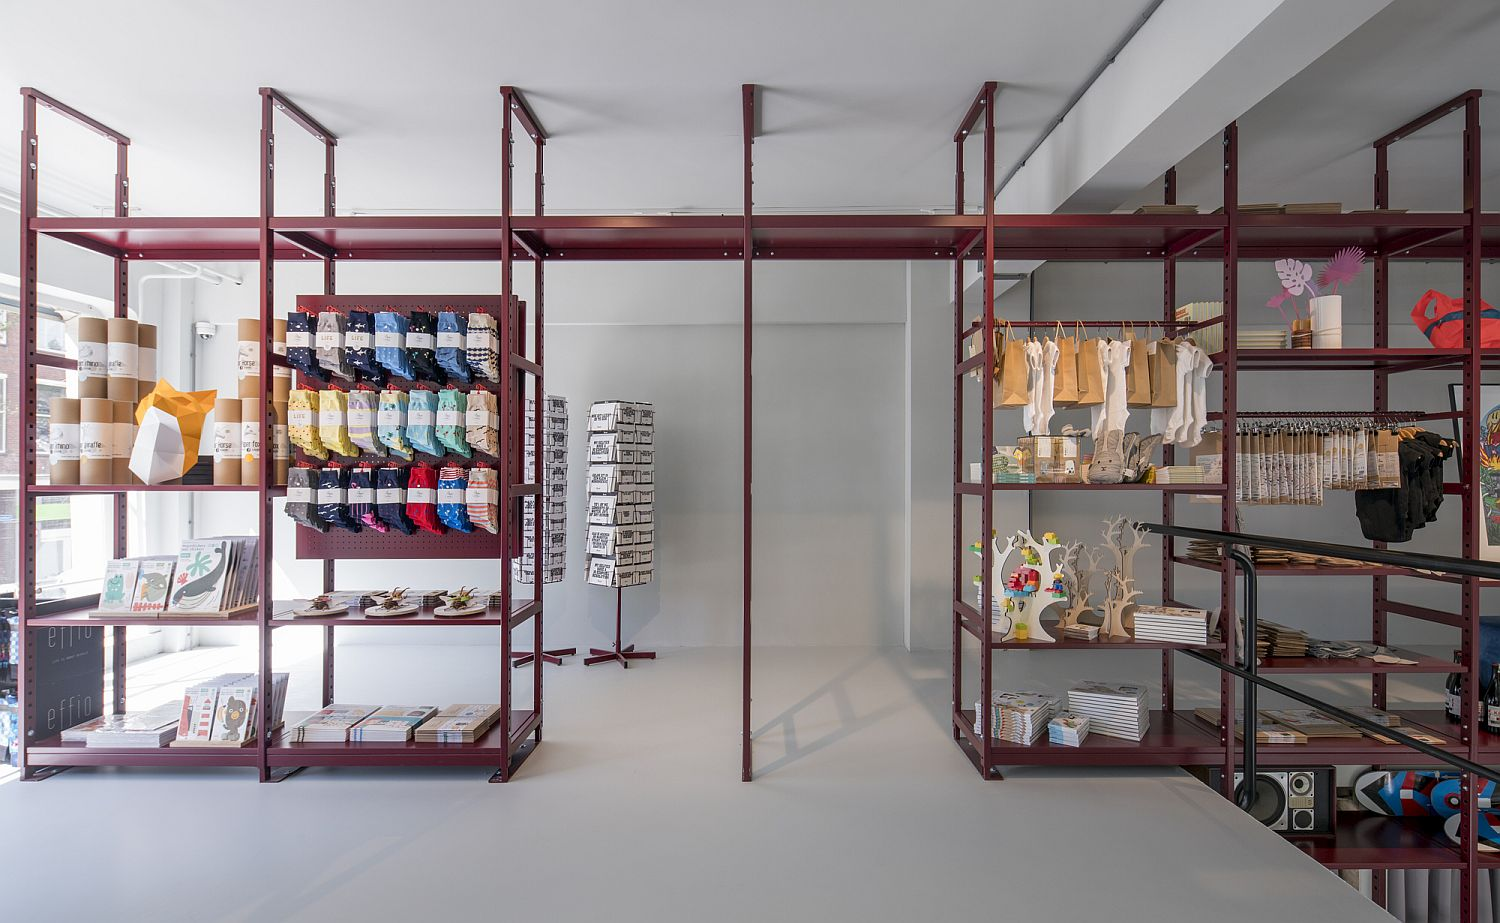 Simple and industrial style shelving provides ample display space